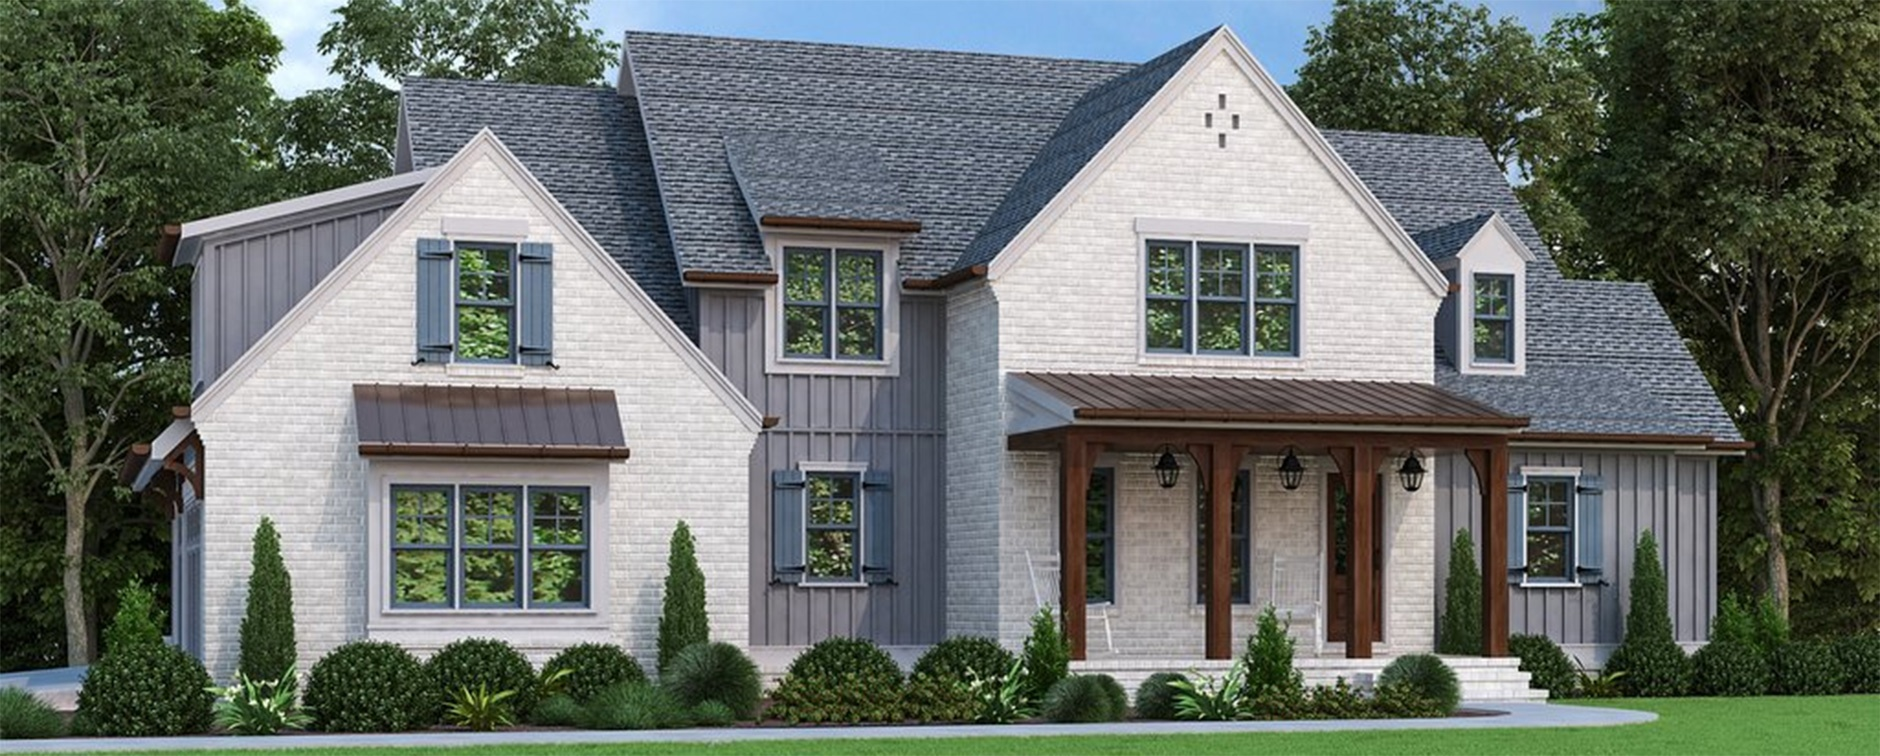 Browse 4 Bedroom House Plans